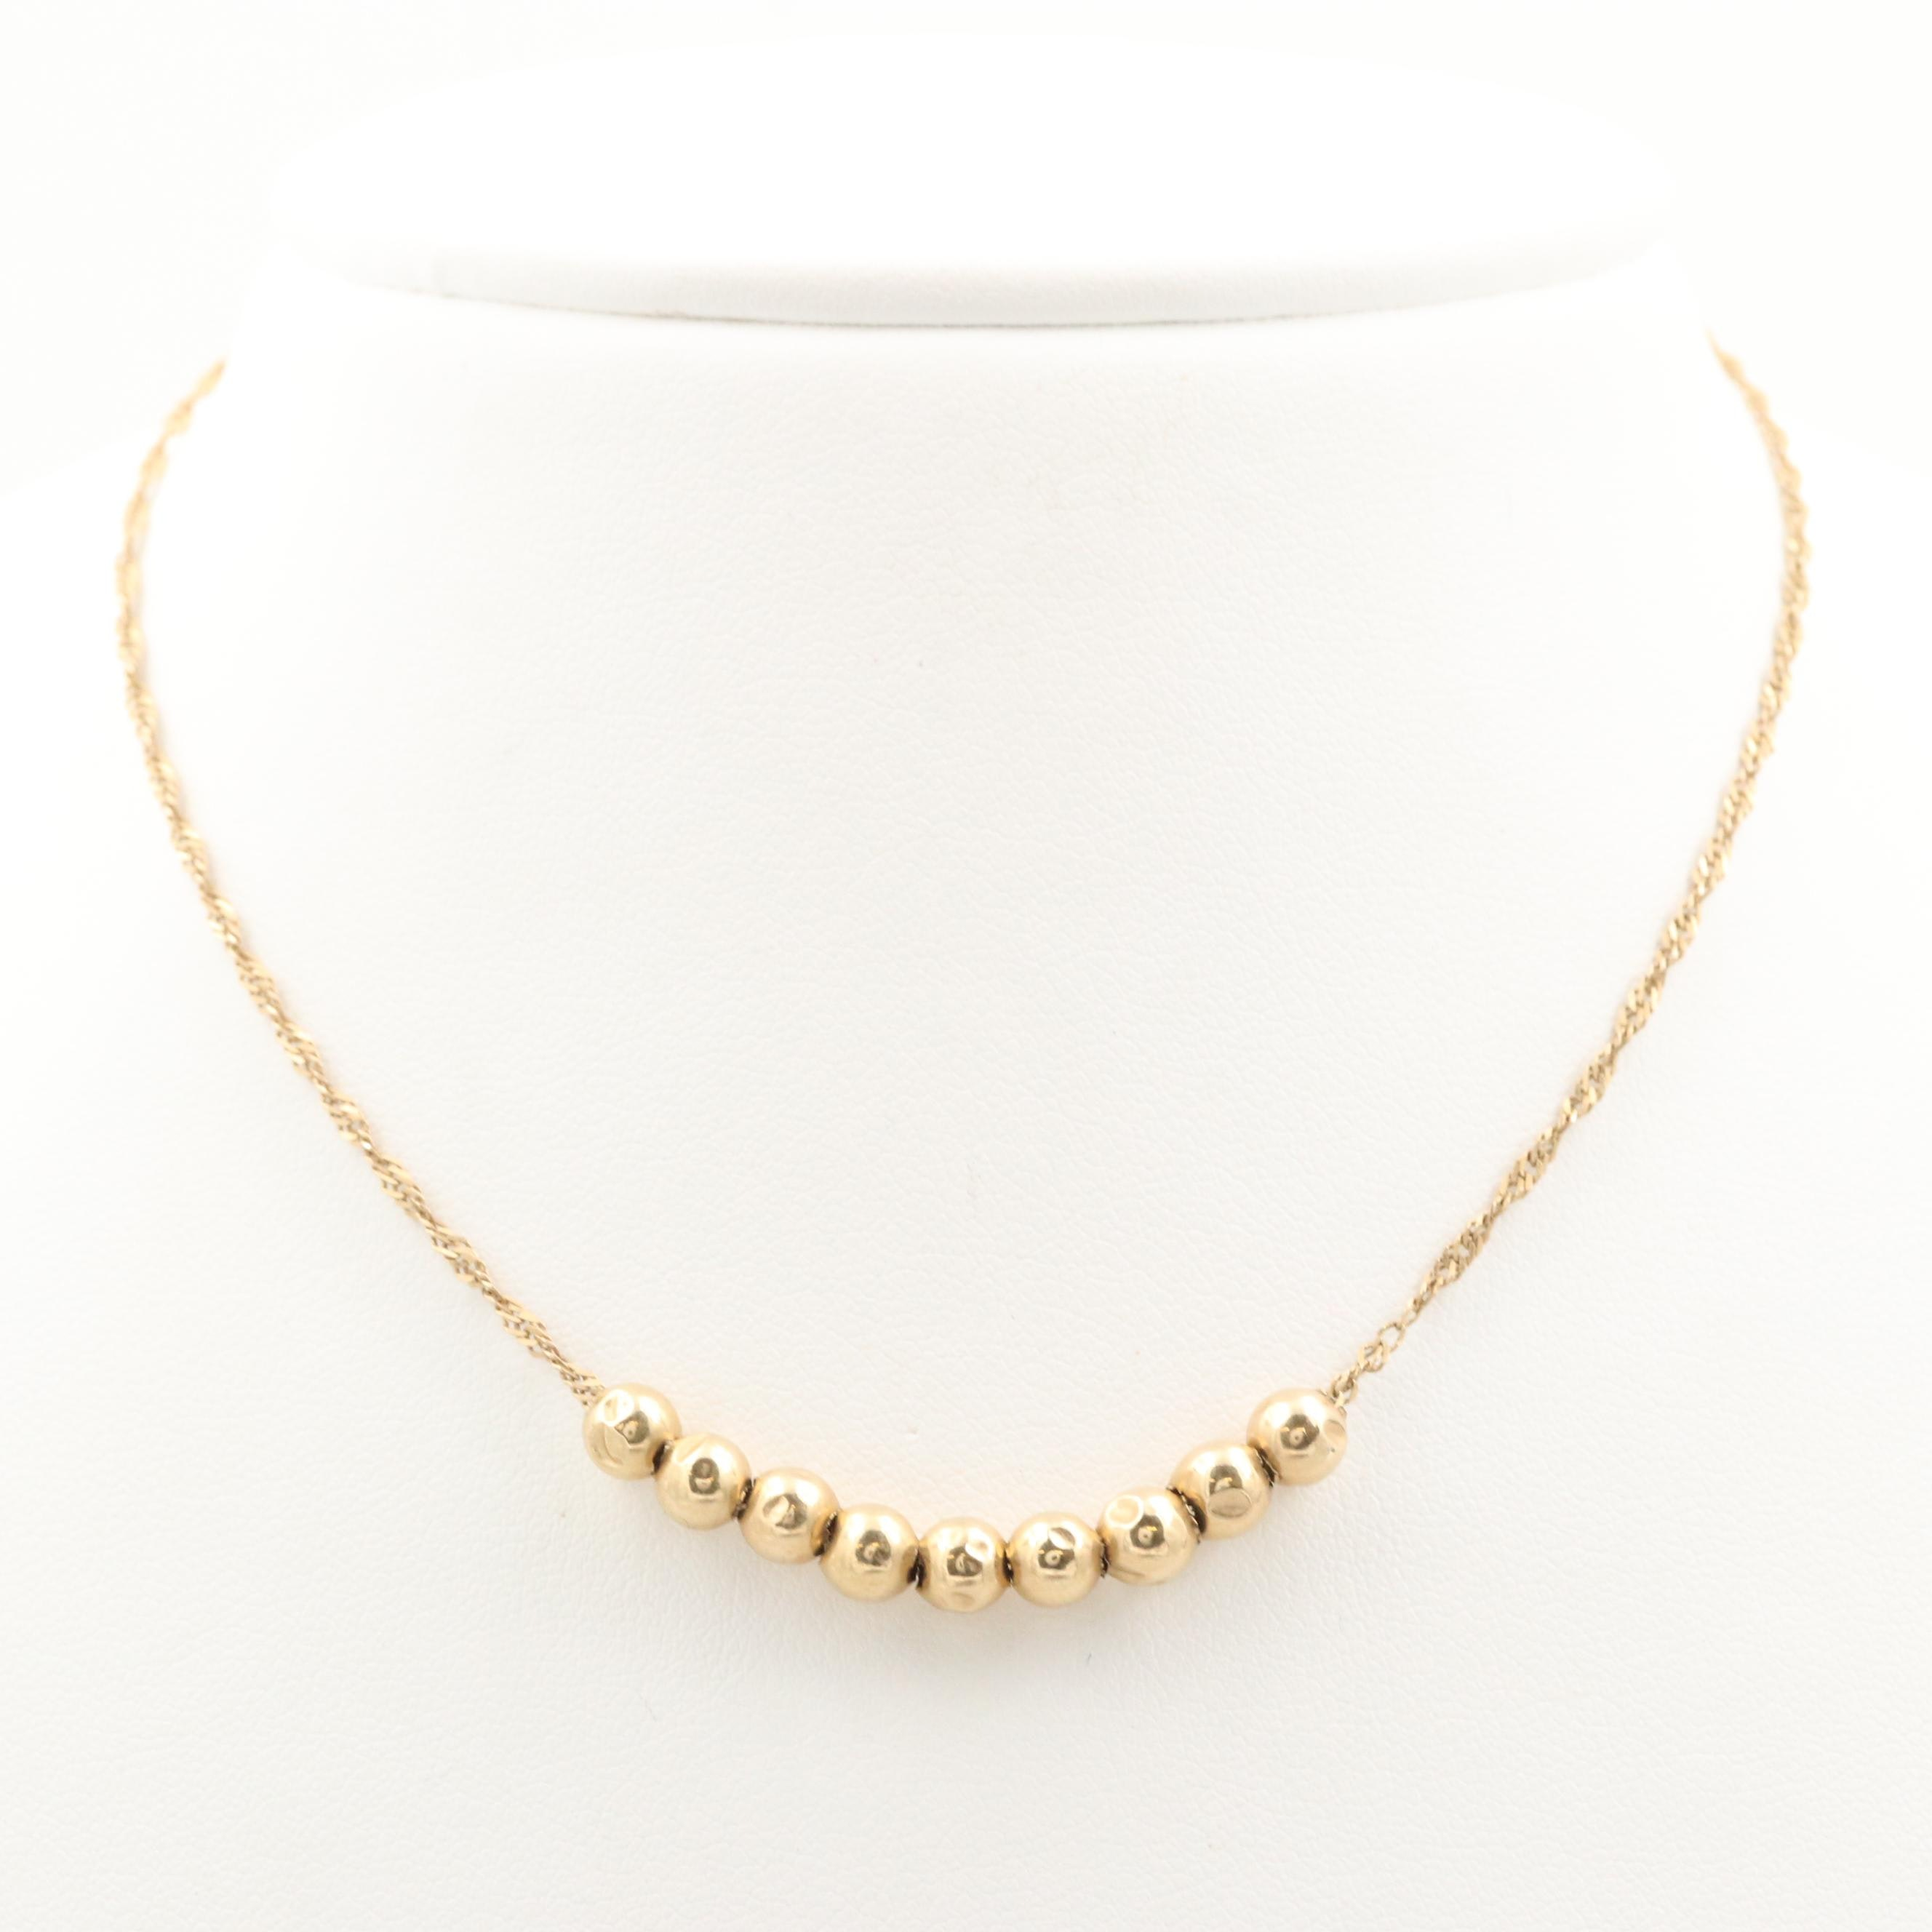 14K and 10K Yellow Gold Beaded Necklace